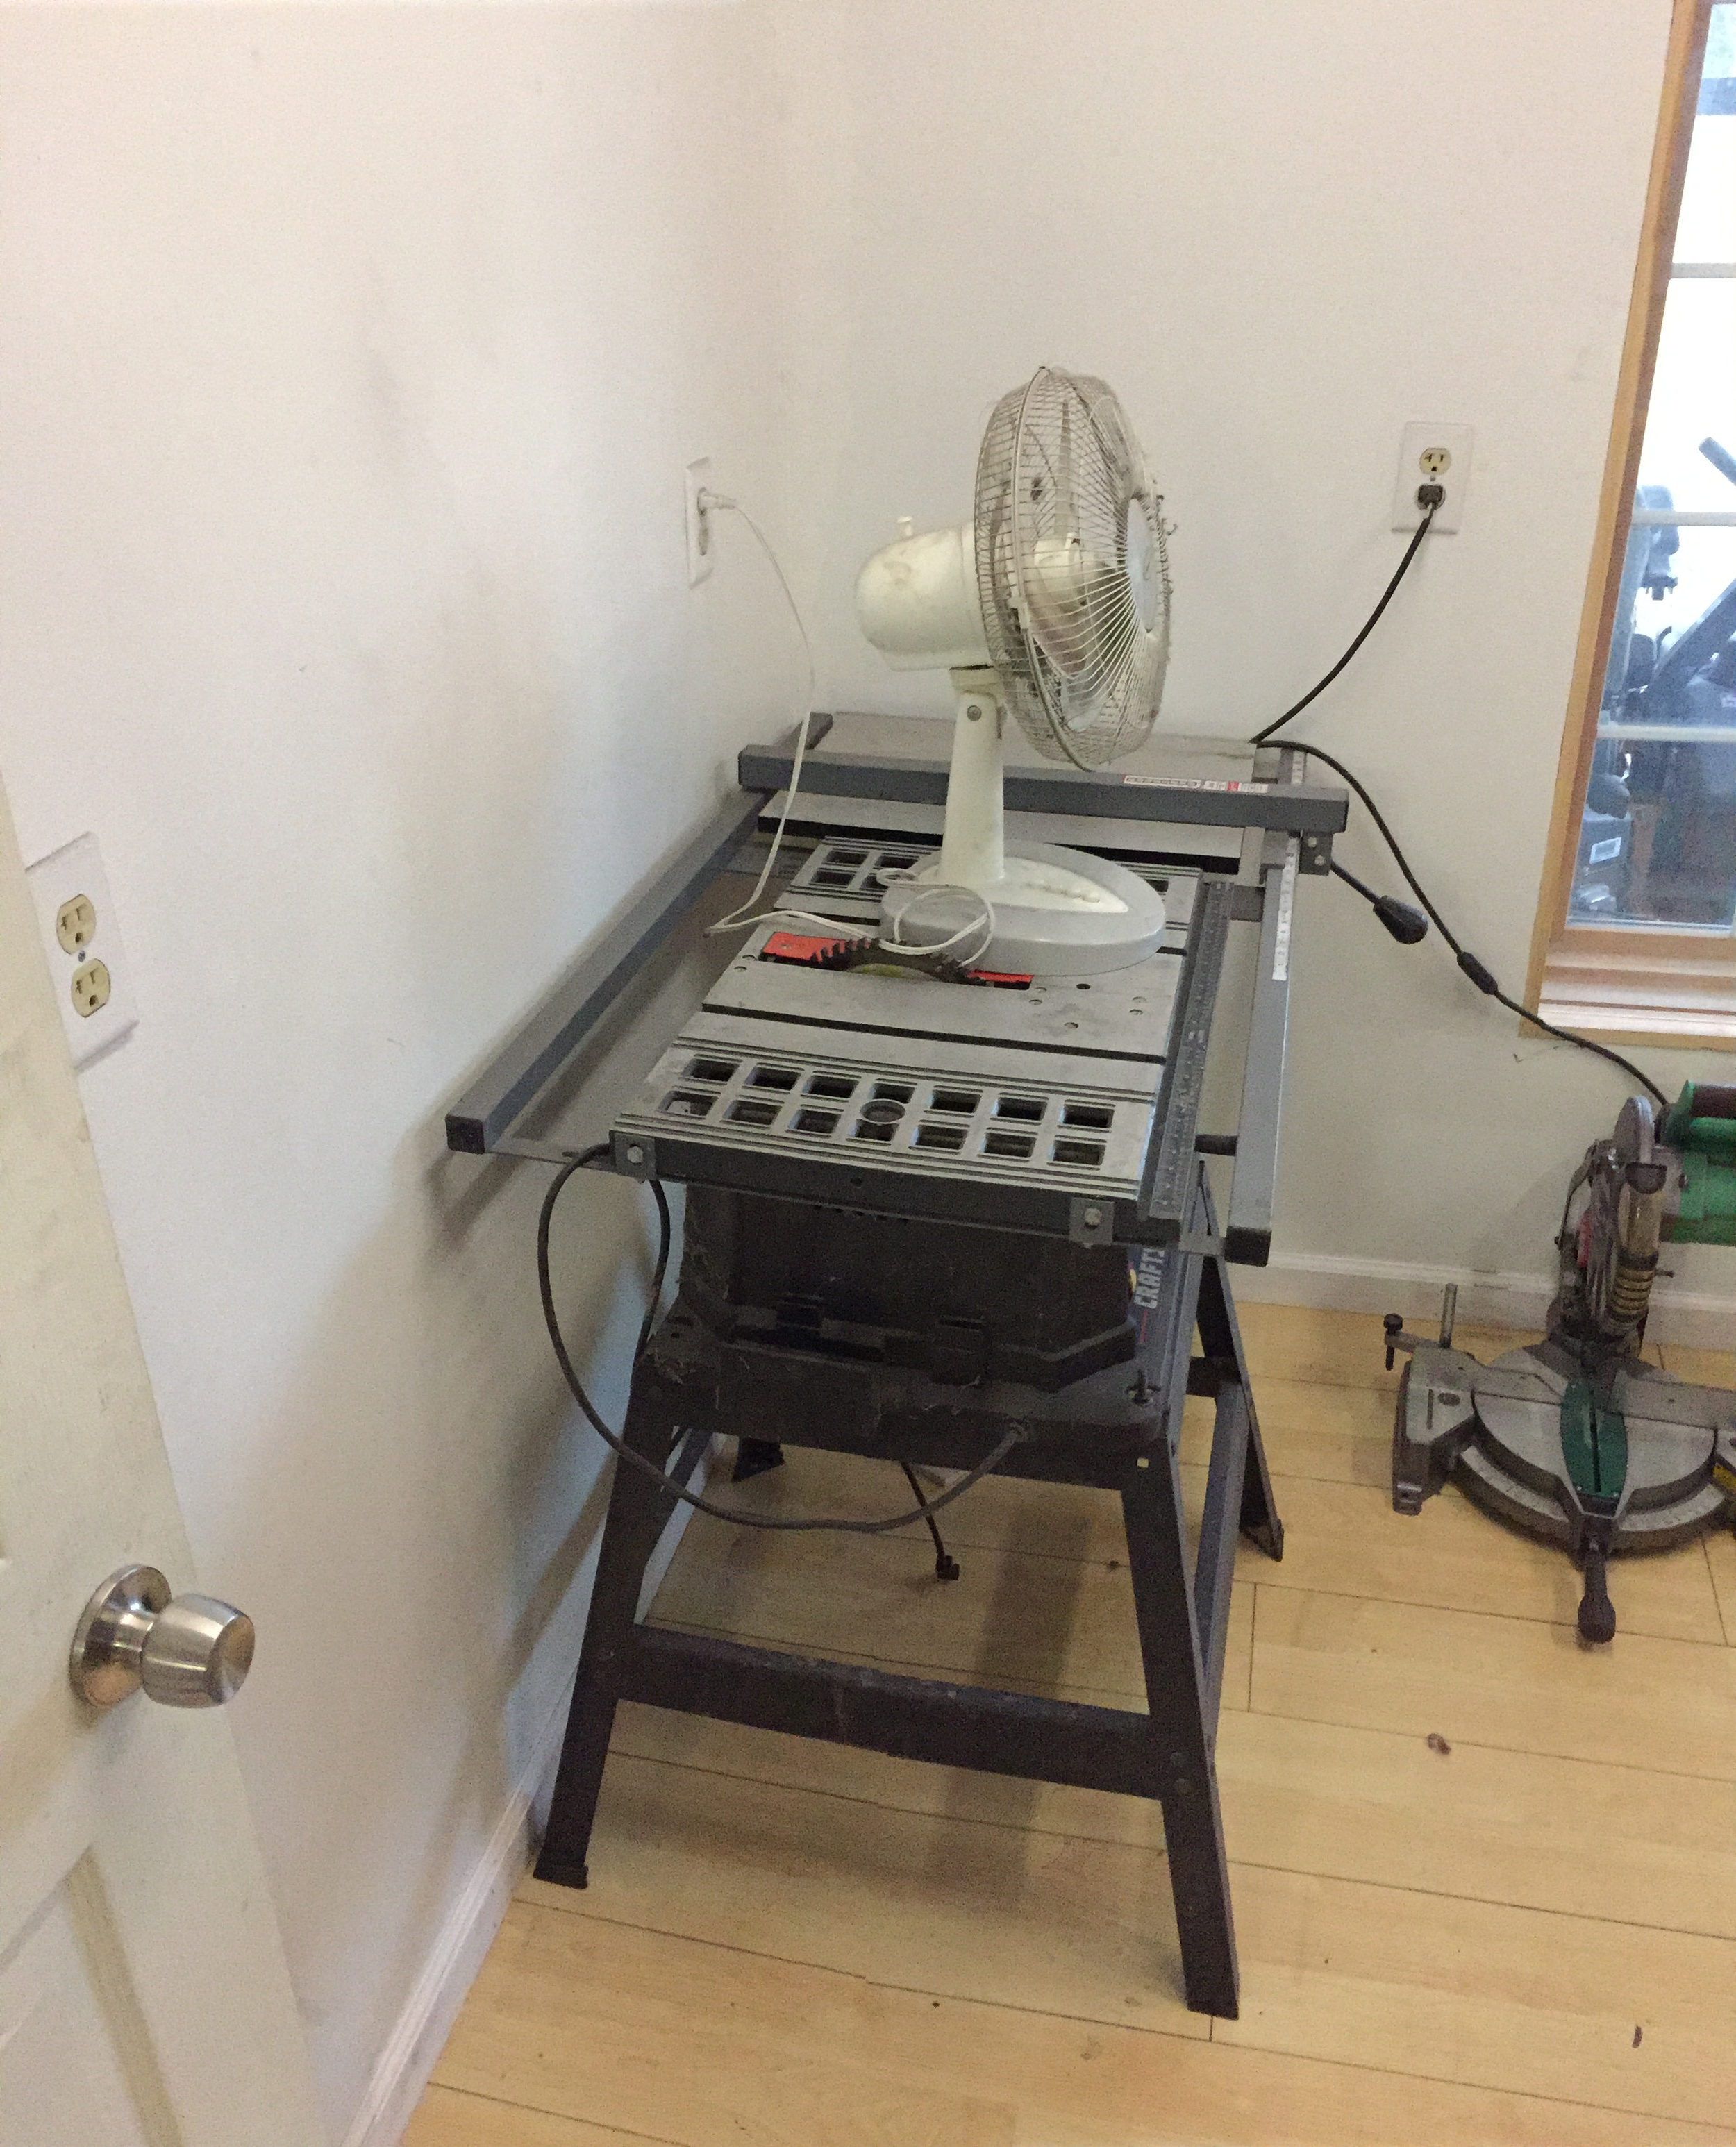 My trusty table saw. Had it for close to 20 years!